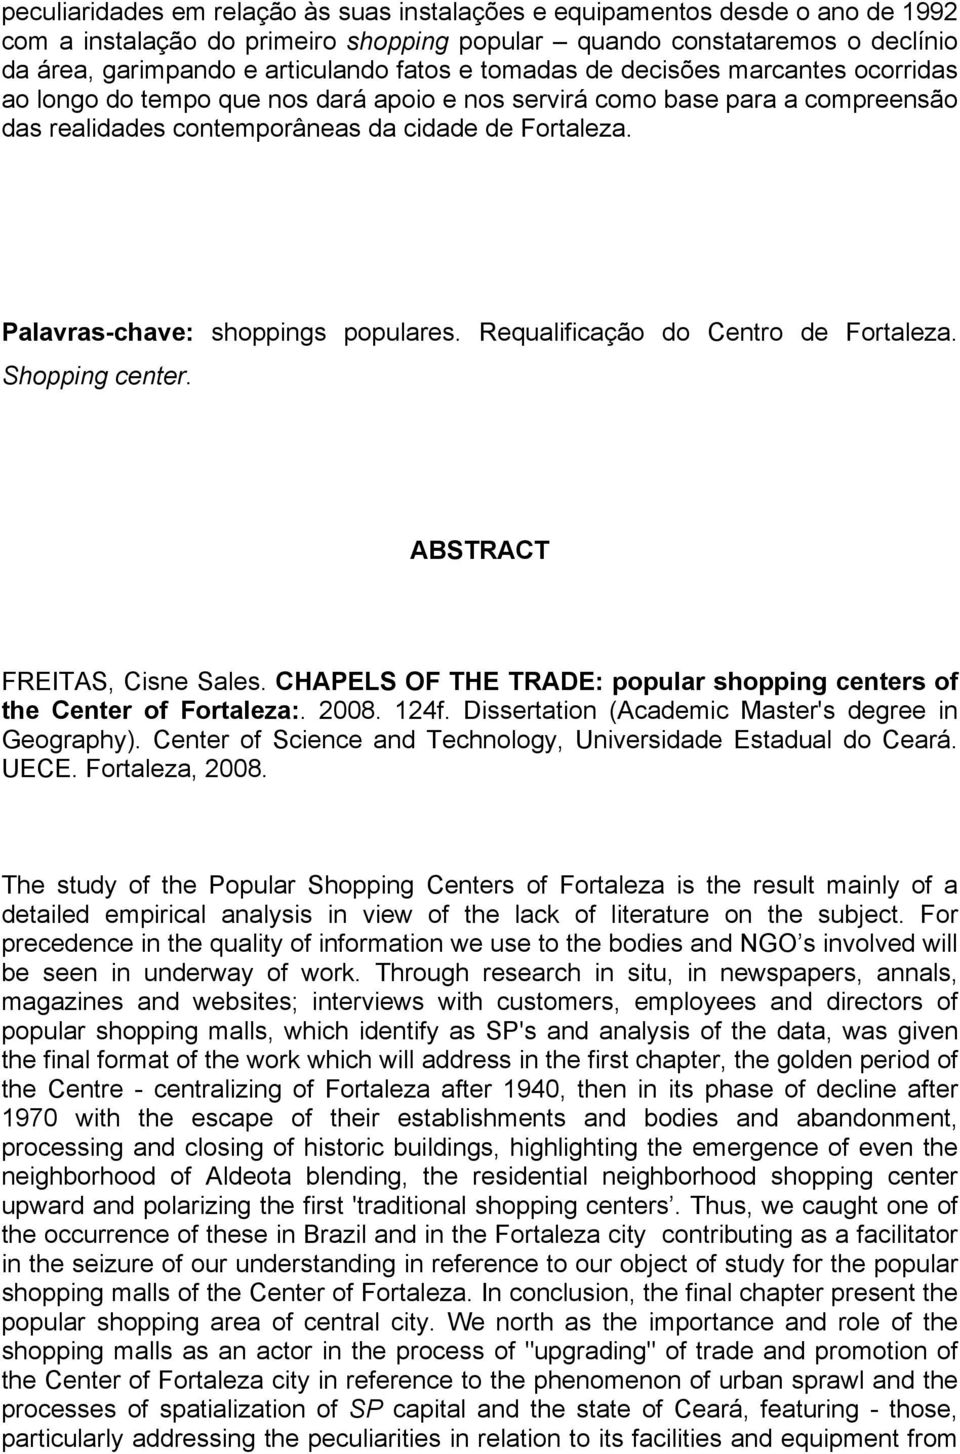 Palavras-chave: shoppings populares. Requalificação do Centro de Fortaleza. Shopping center. ABSTRACT FREITAS, Cisne Sales. CHAPELS OF THE TRADE: popular shopping centers of the Center of Fortaleza:.